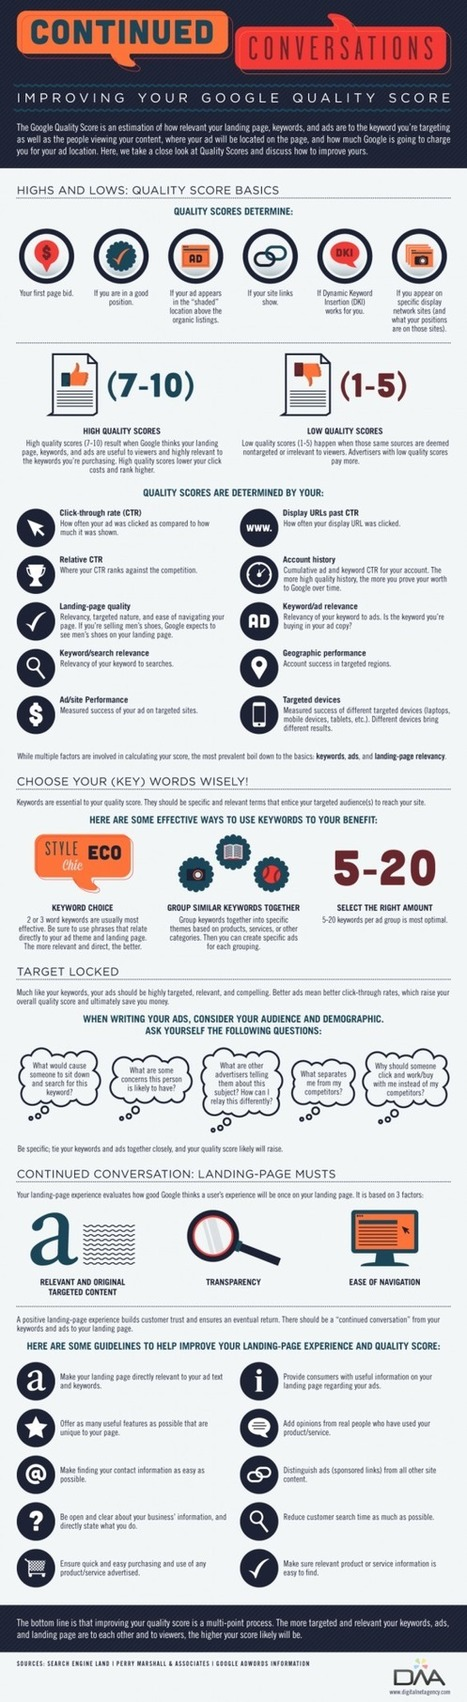 Improving your Google Quality Score (infographic) | How to optimize your Conversion Rate? | Scoop.it